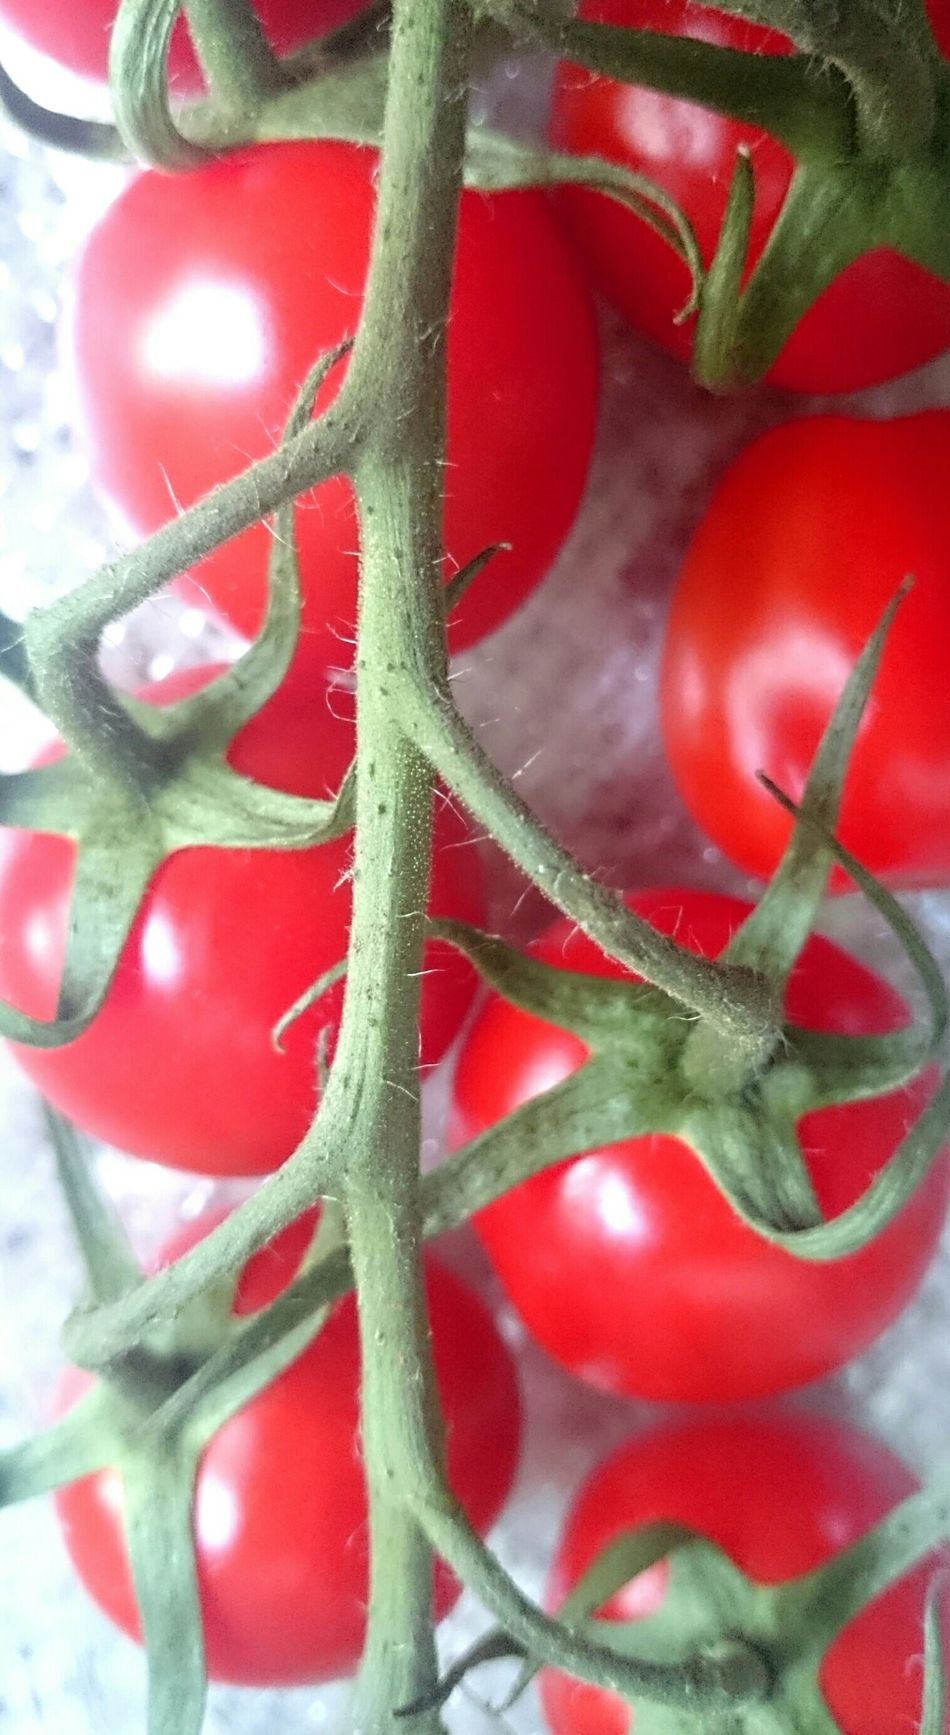 Tomato Summer Vegatable Red Healthy